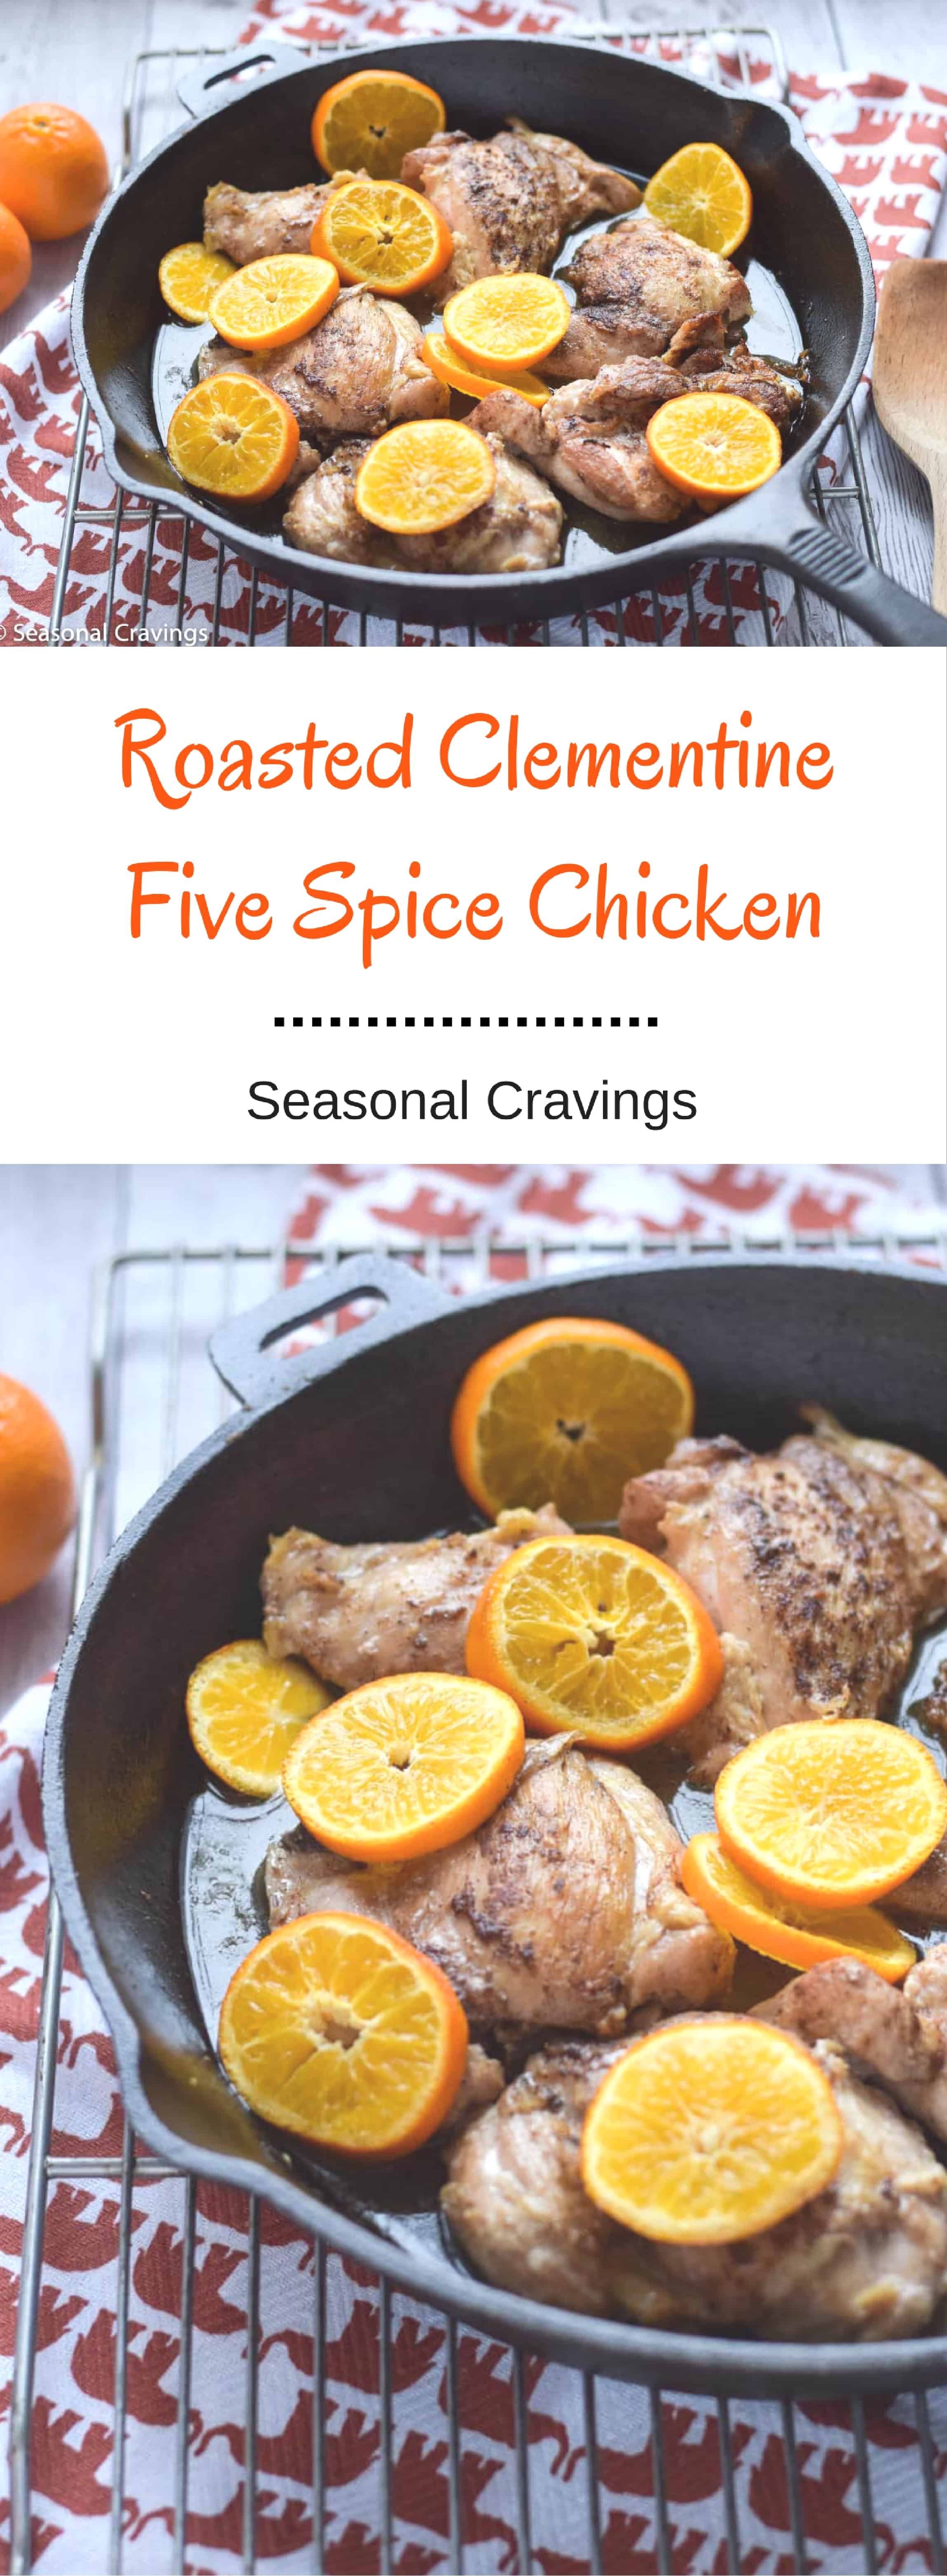 Roasted Clementine Five Spice Chicken